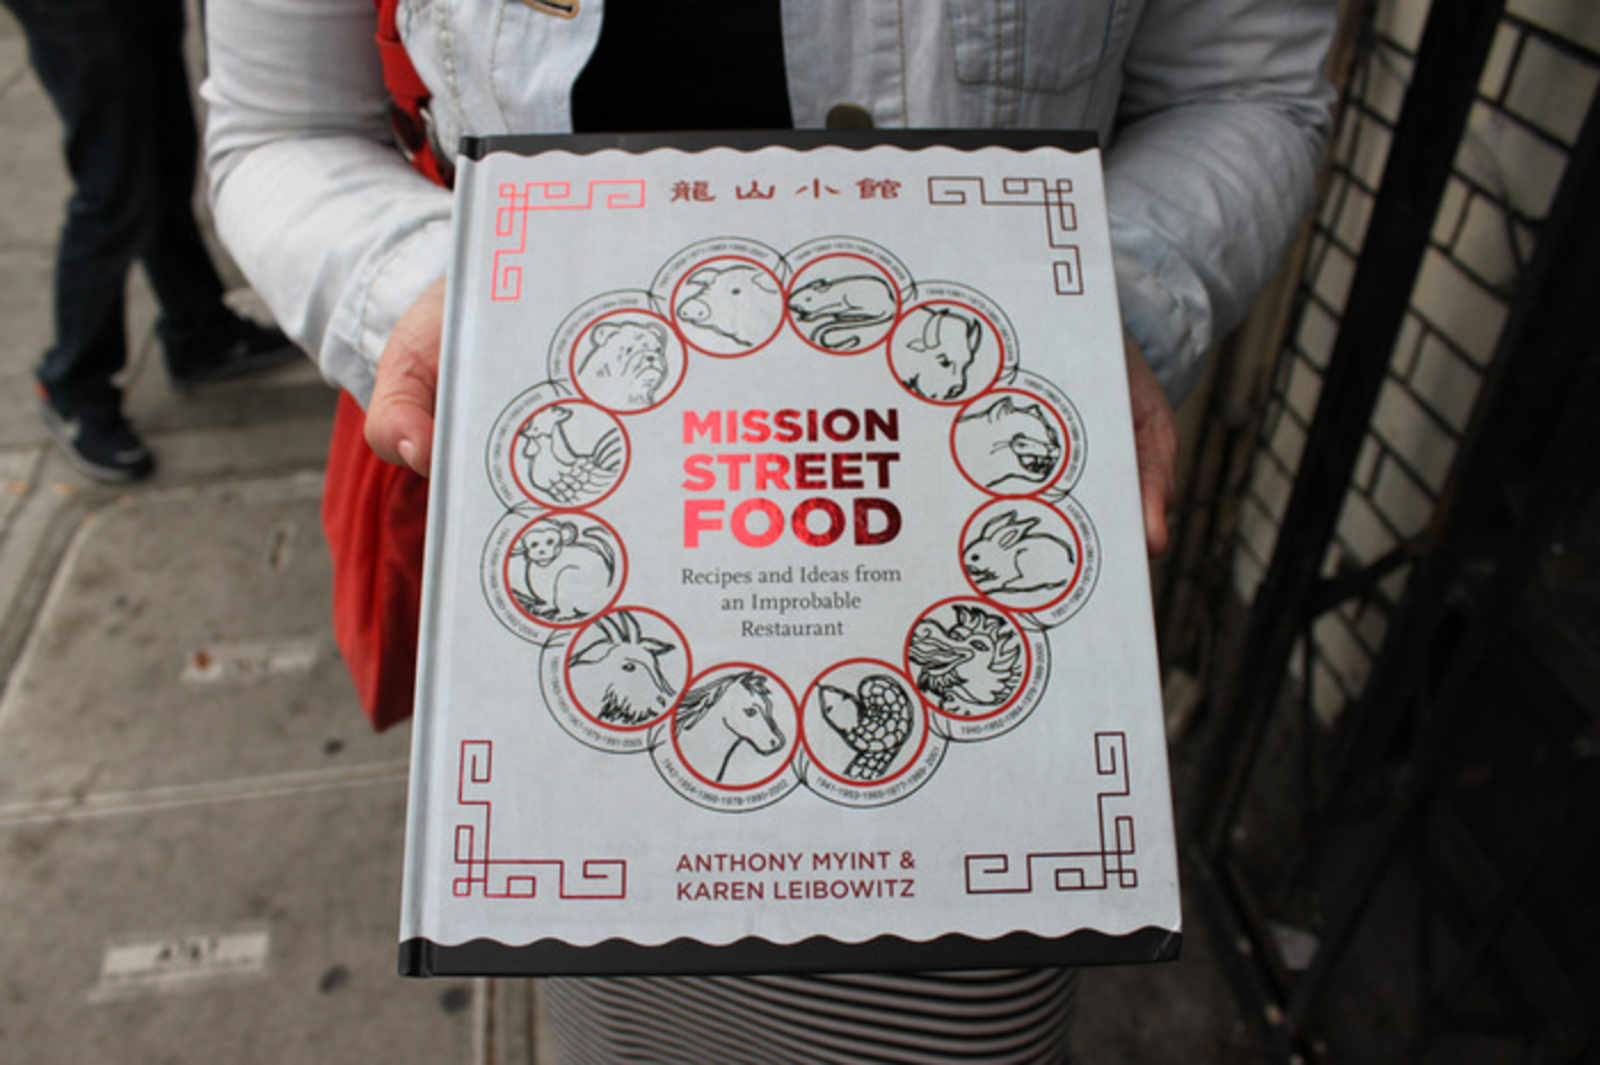 Mission street food cookbook unveiled uptown almanac mission street food cookbook unveiled forumfinder Choice Image